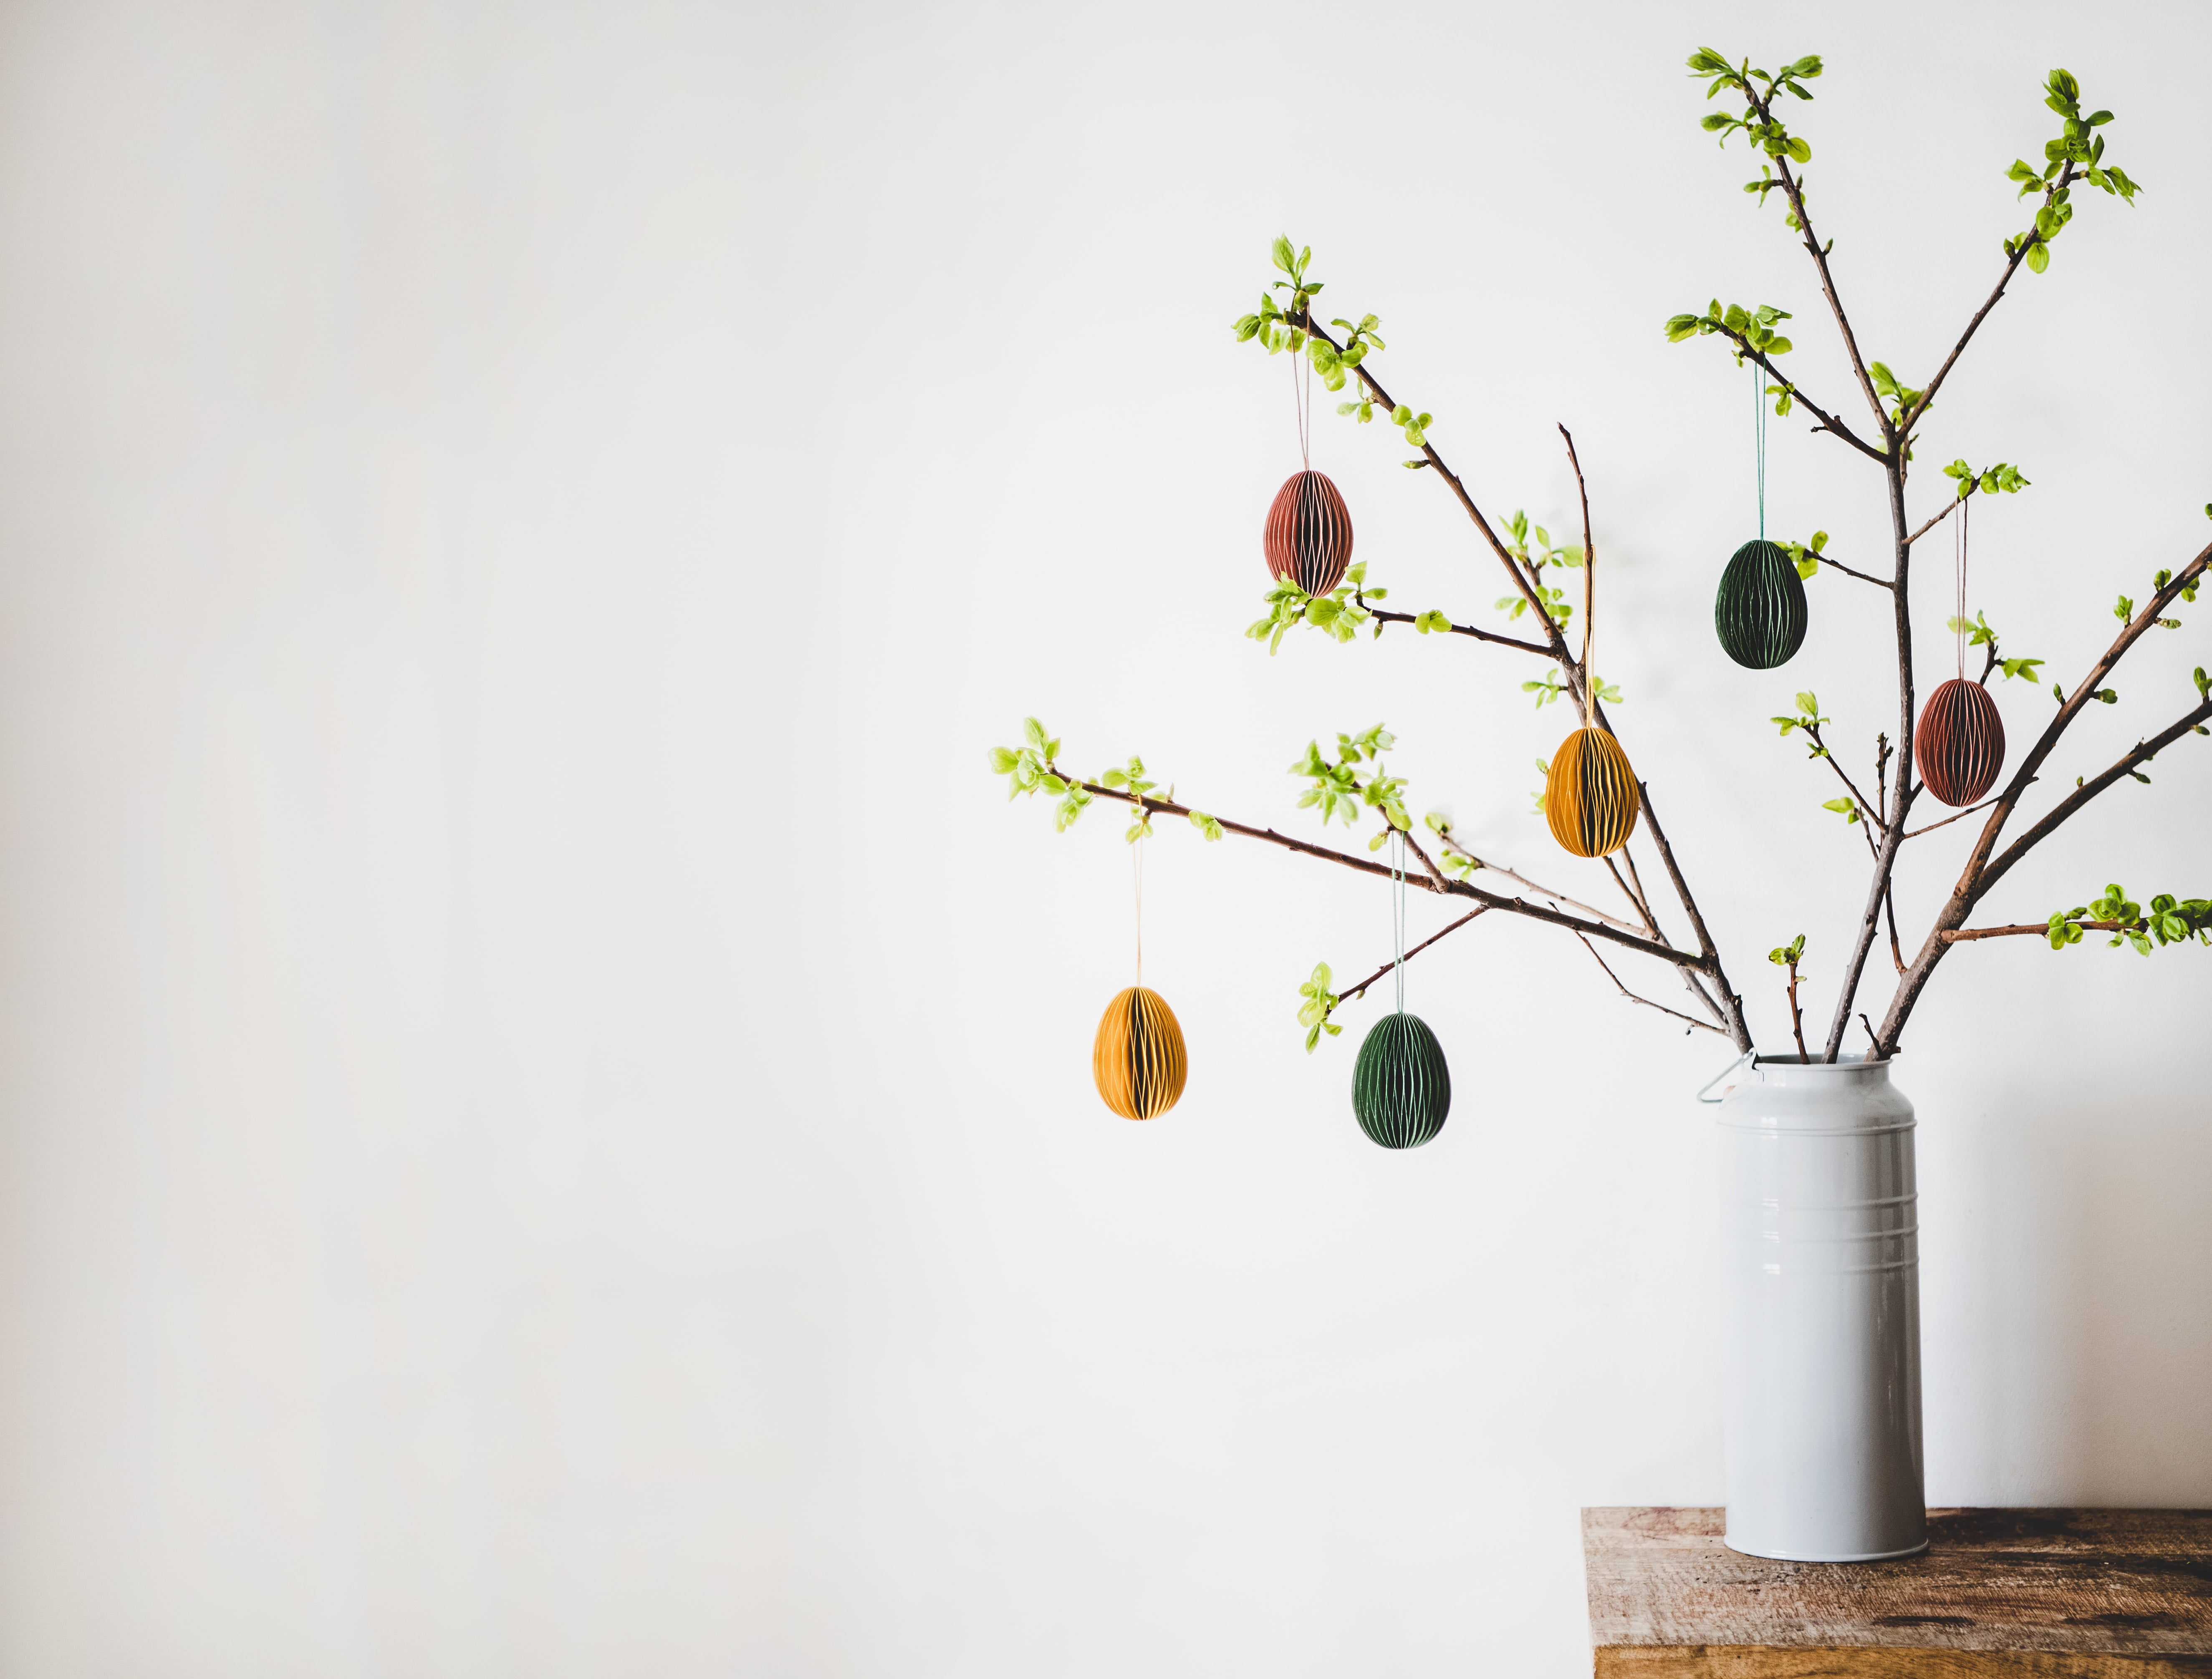 Easter holiday home decoration. Tree branches in vase with fresh spring leaves decorated with festive colorful Easter eggs, white wall background, copy space. Easter holiday preparation, greeting card